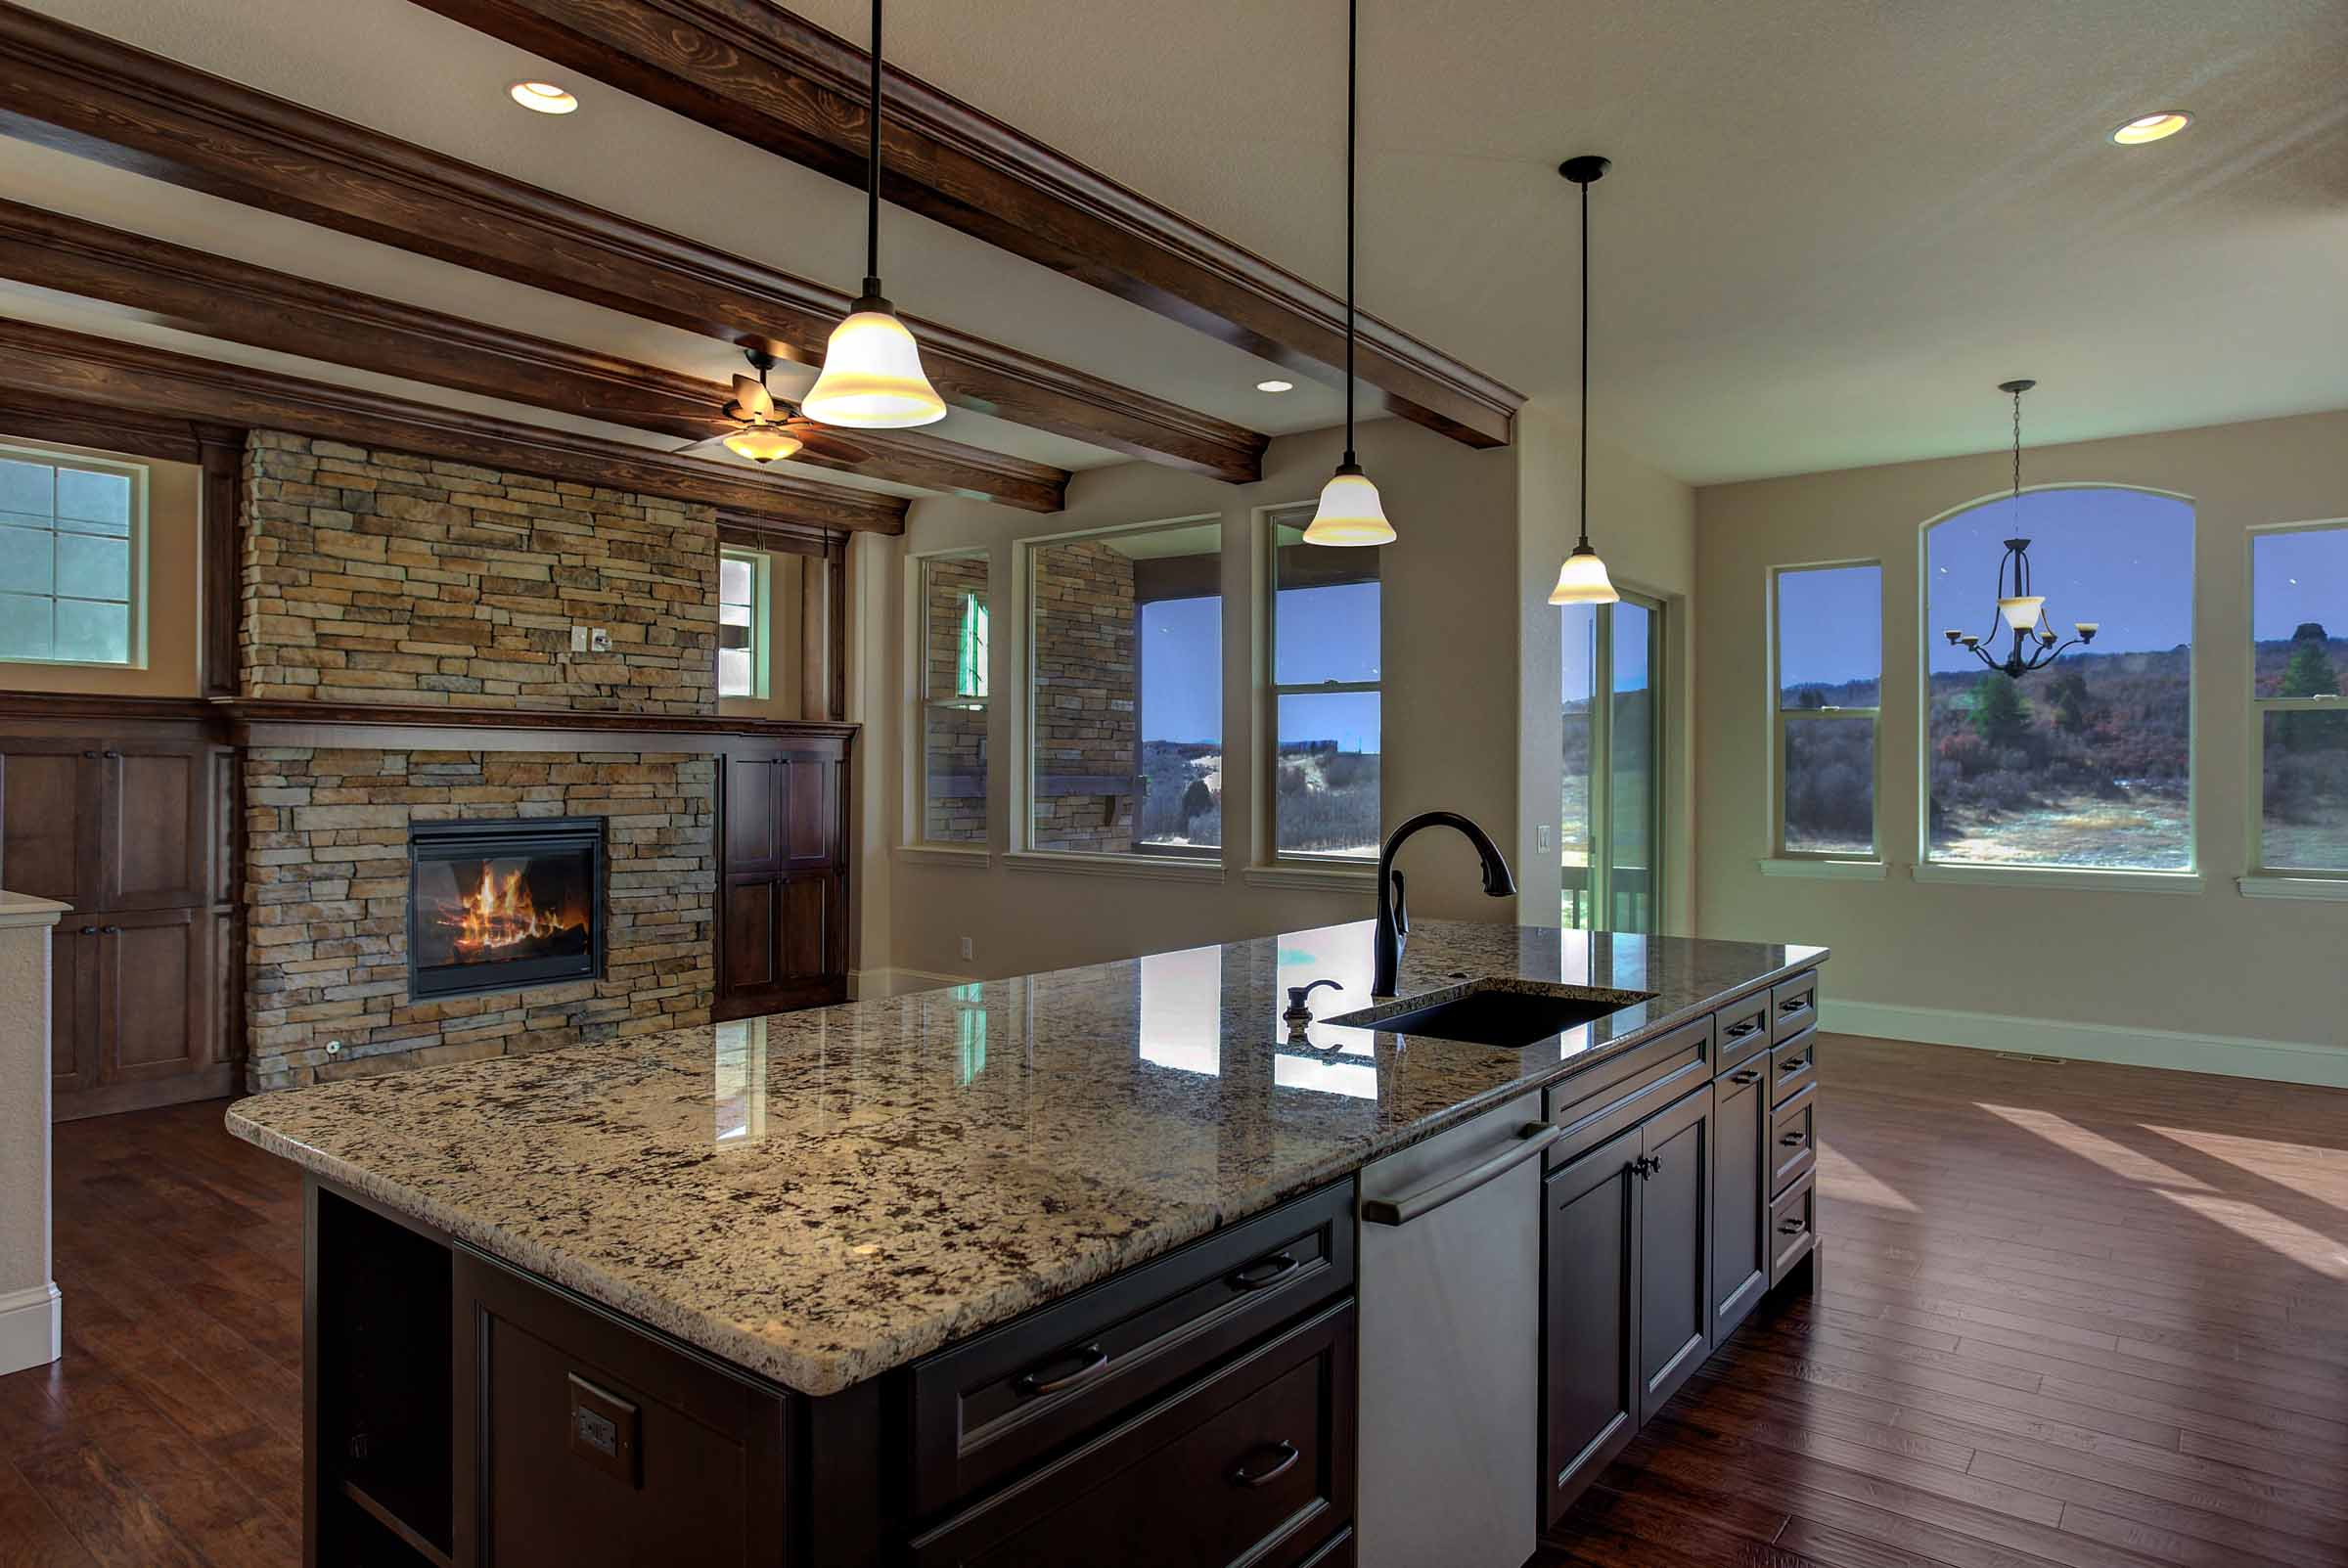 Luxury Custom Kitchen New Home Open Floor Plan Castle Rock Colorado.jpg